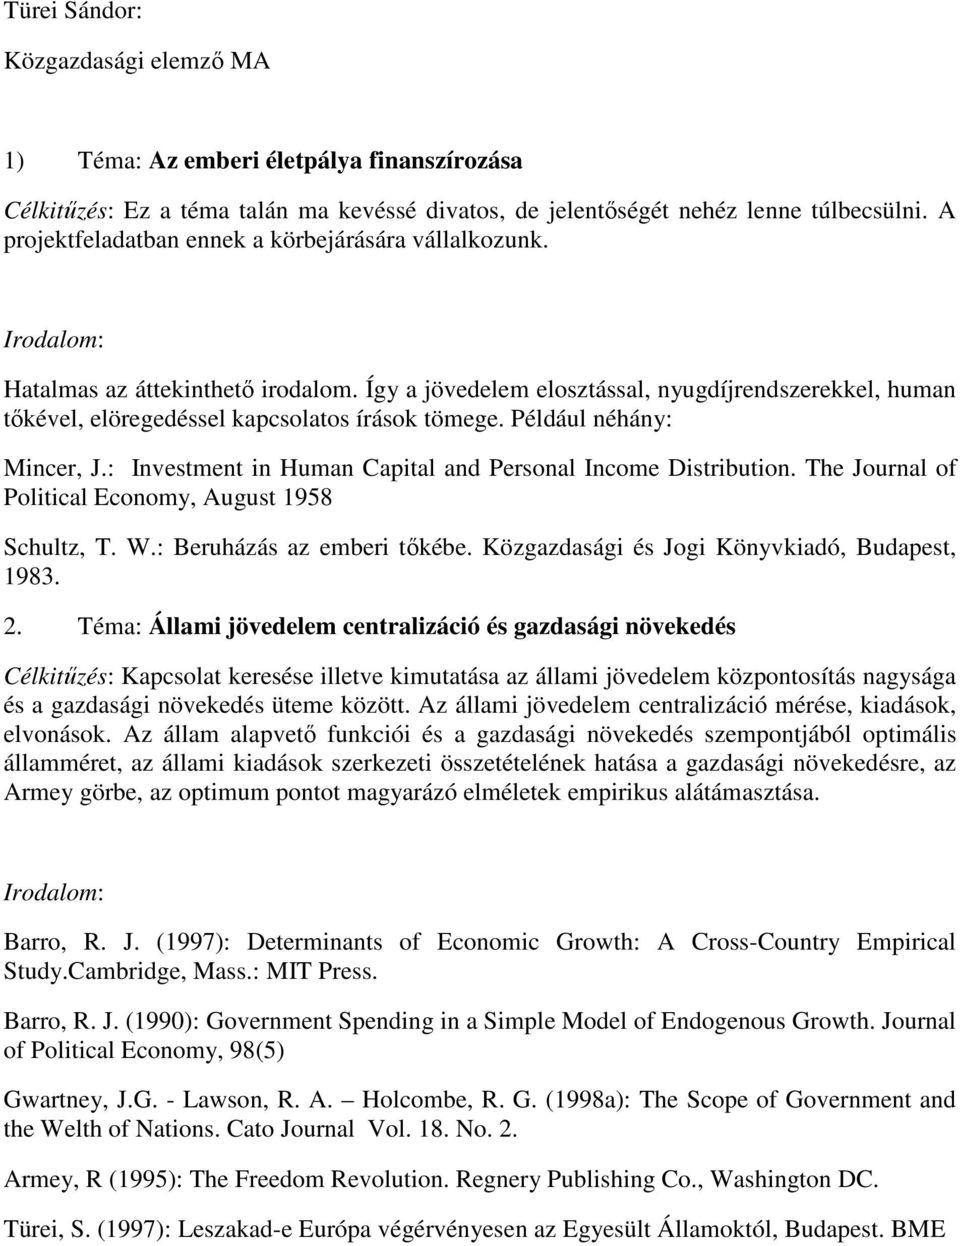 Így a jövedelem elosztással, nyugdíjrendszerekkel, human tıkével, elöregedéssel kapcsolatos írások tömege. Például néhány: Mincer, J.: Investment in Human Capital and Personal Income Distribution.